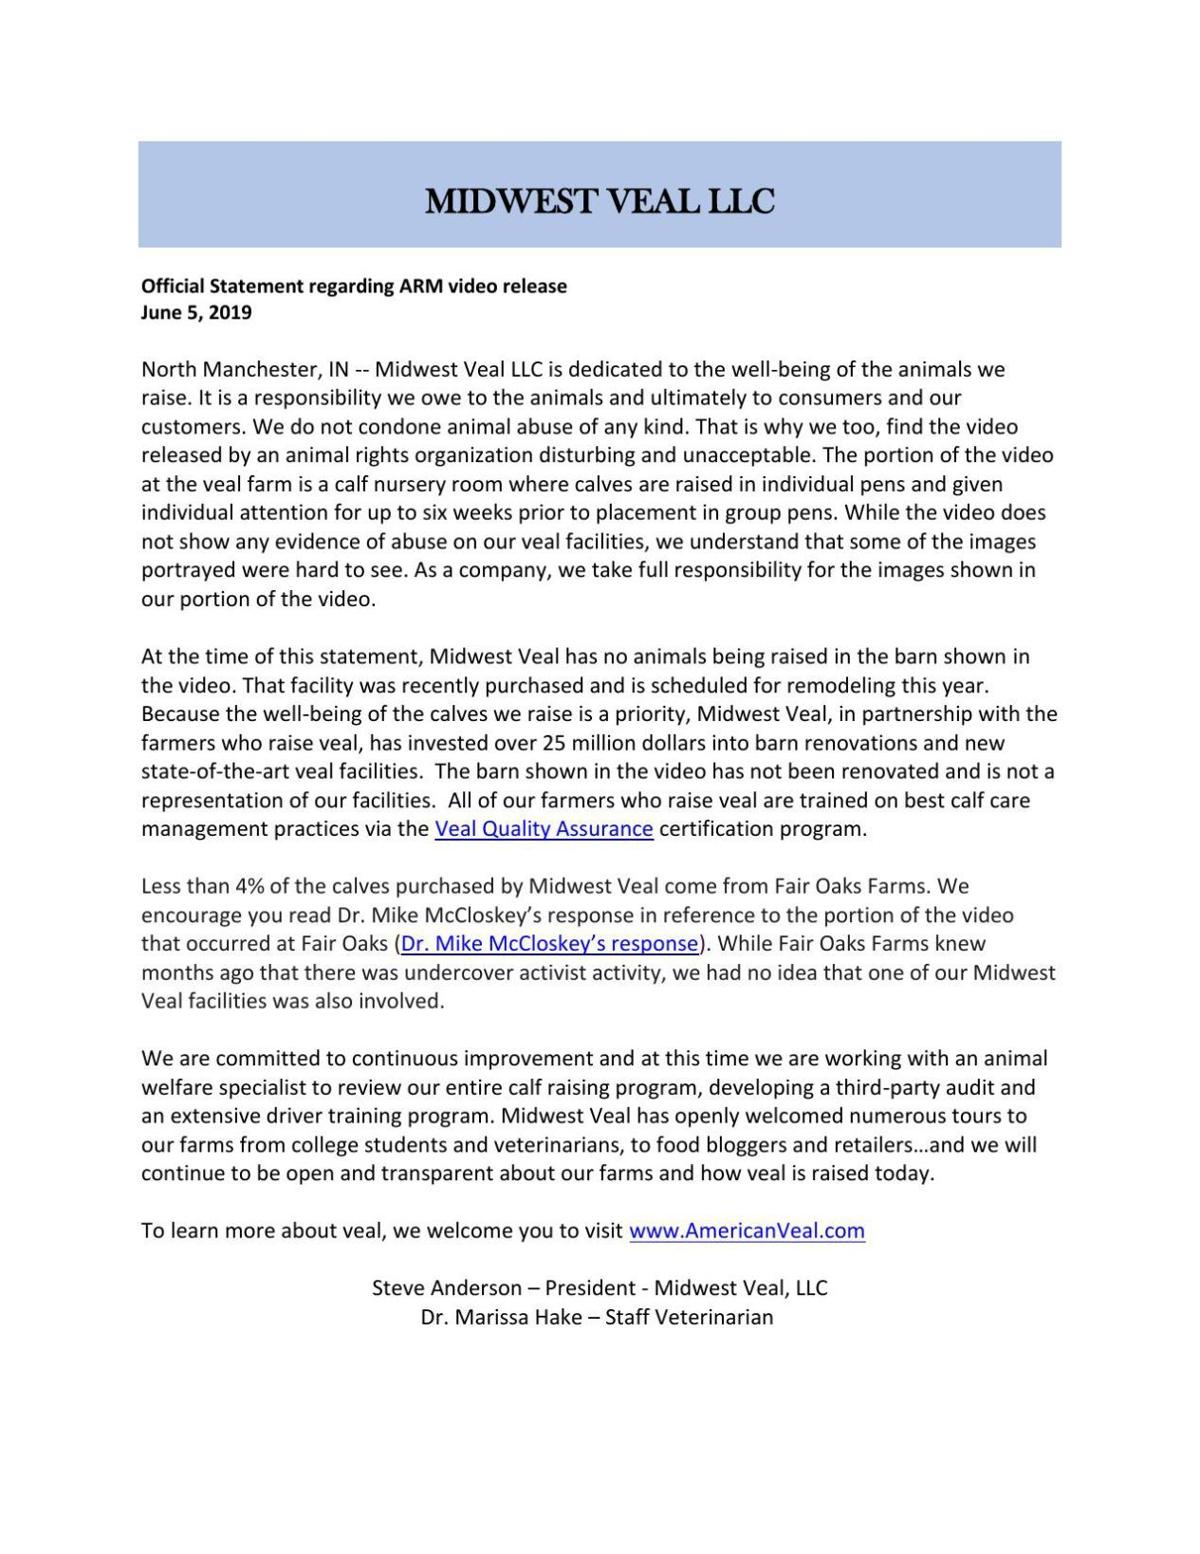 Statement from Midwest Veal